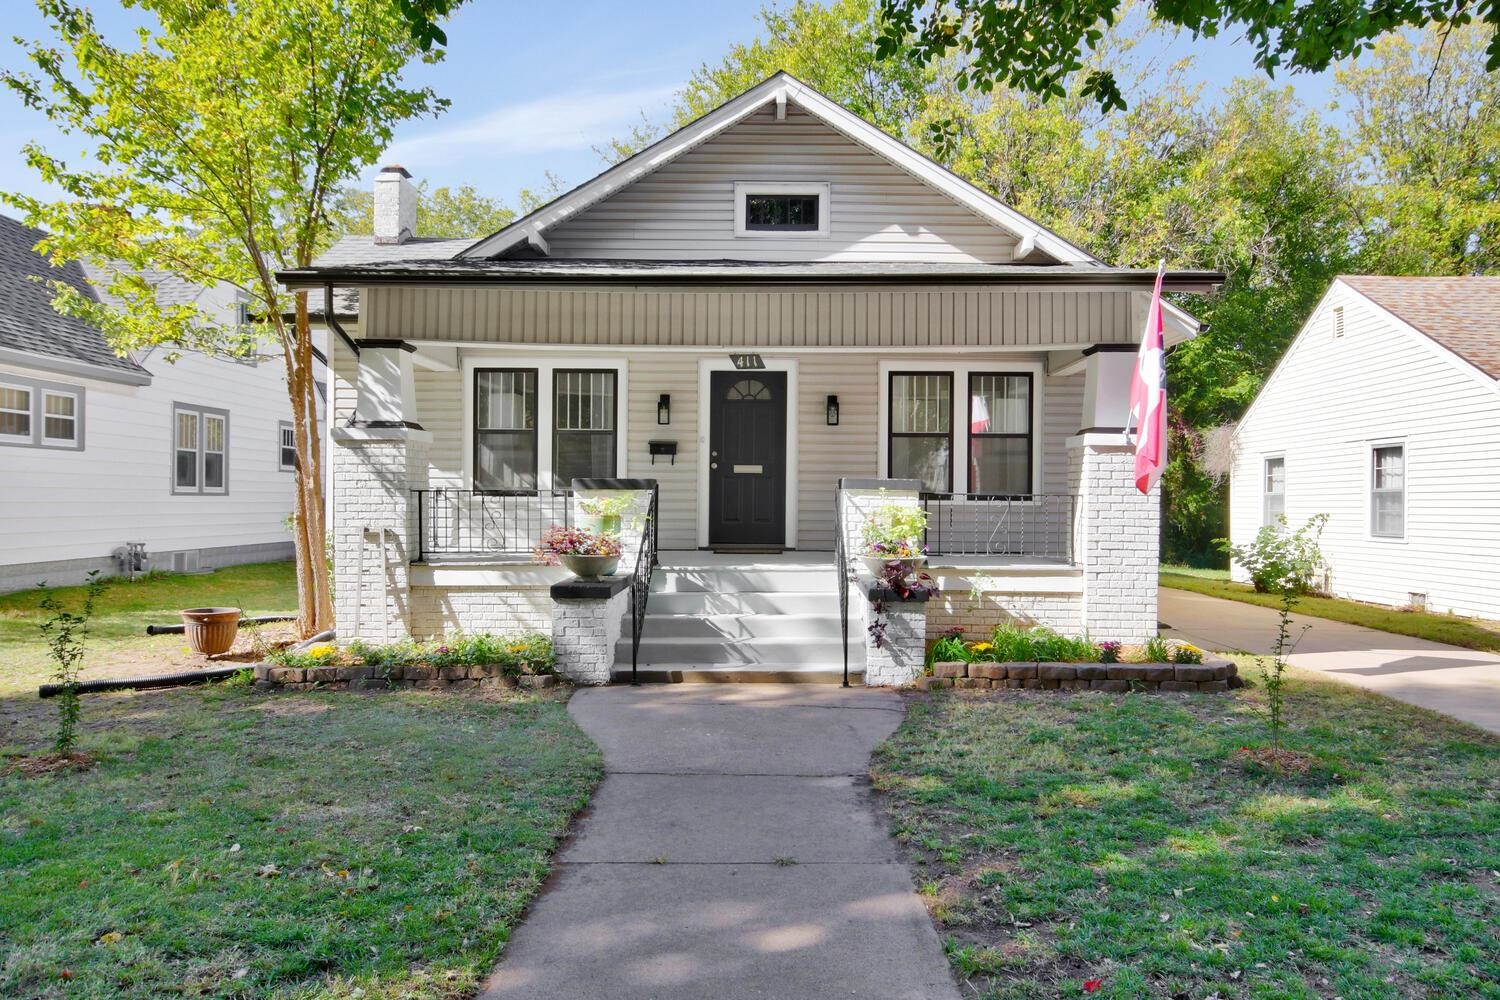 Beautifully updated with old College Hill charm, this 2 bedroom 1 bath bungalow is ready to be enjoy